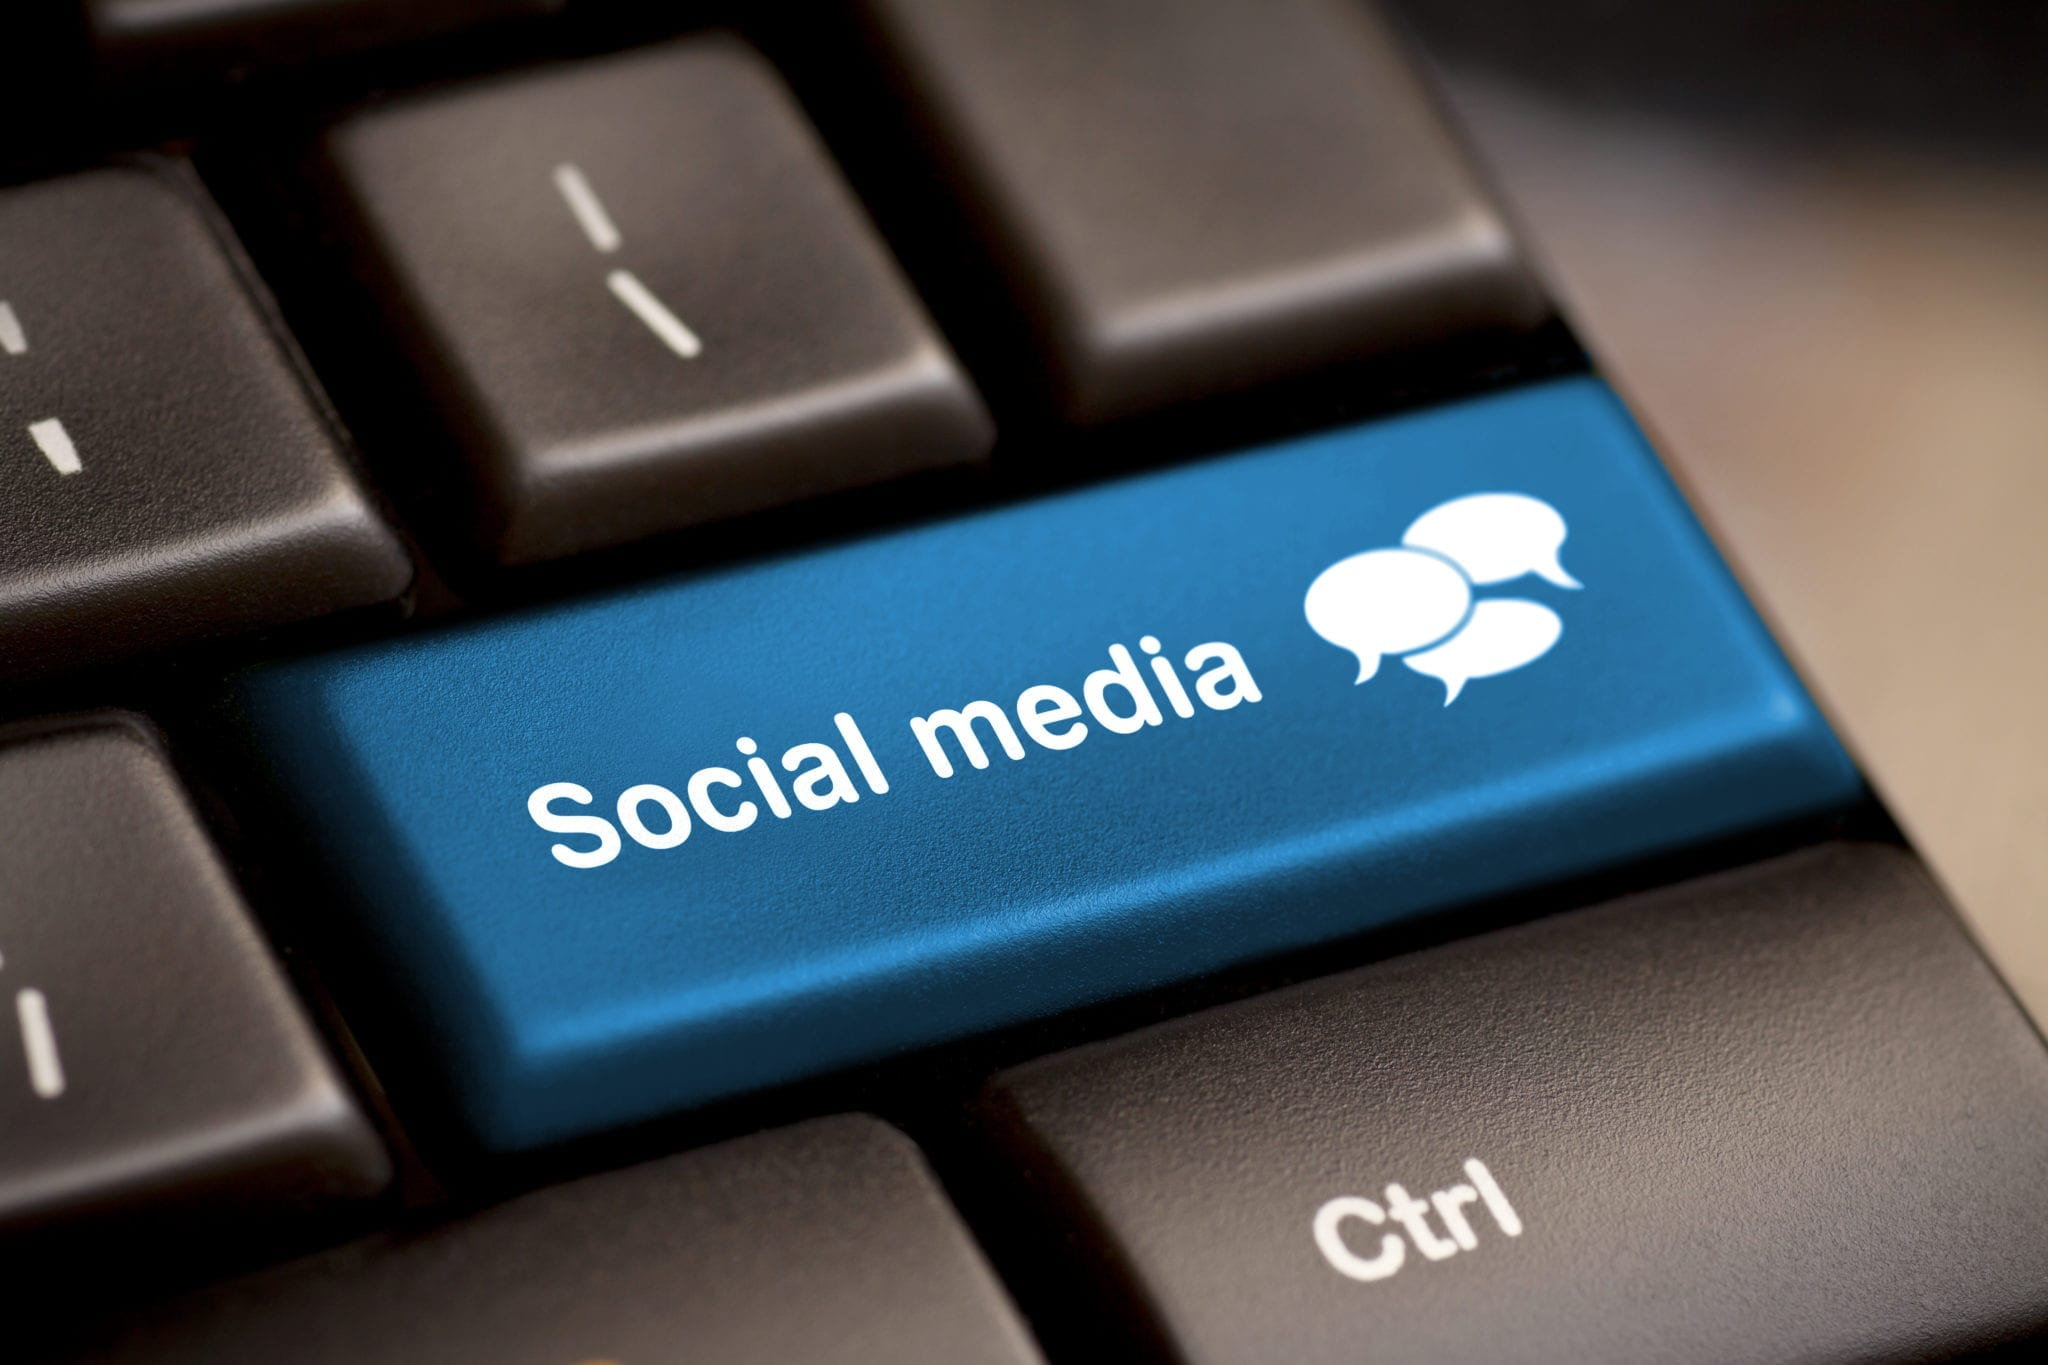 share-your-views-on-social-media-use-in-business.jpg